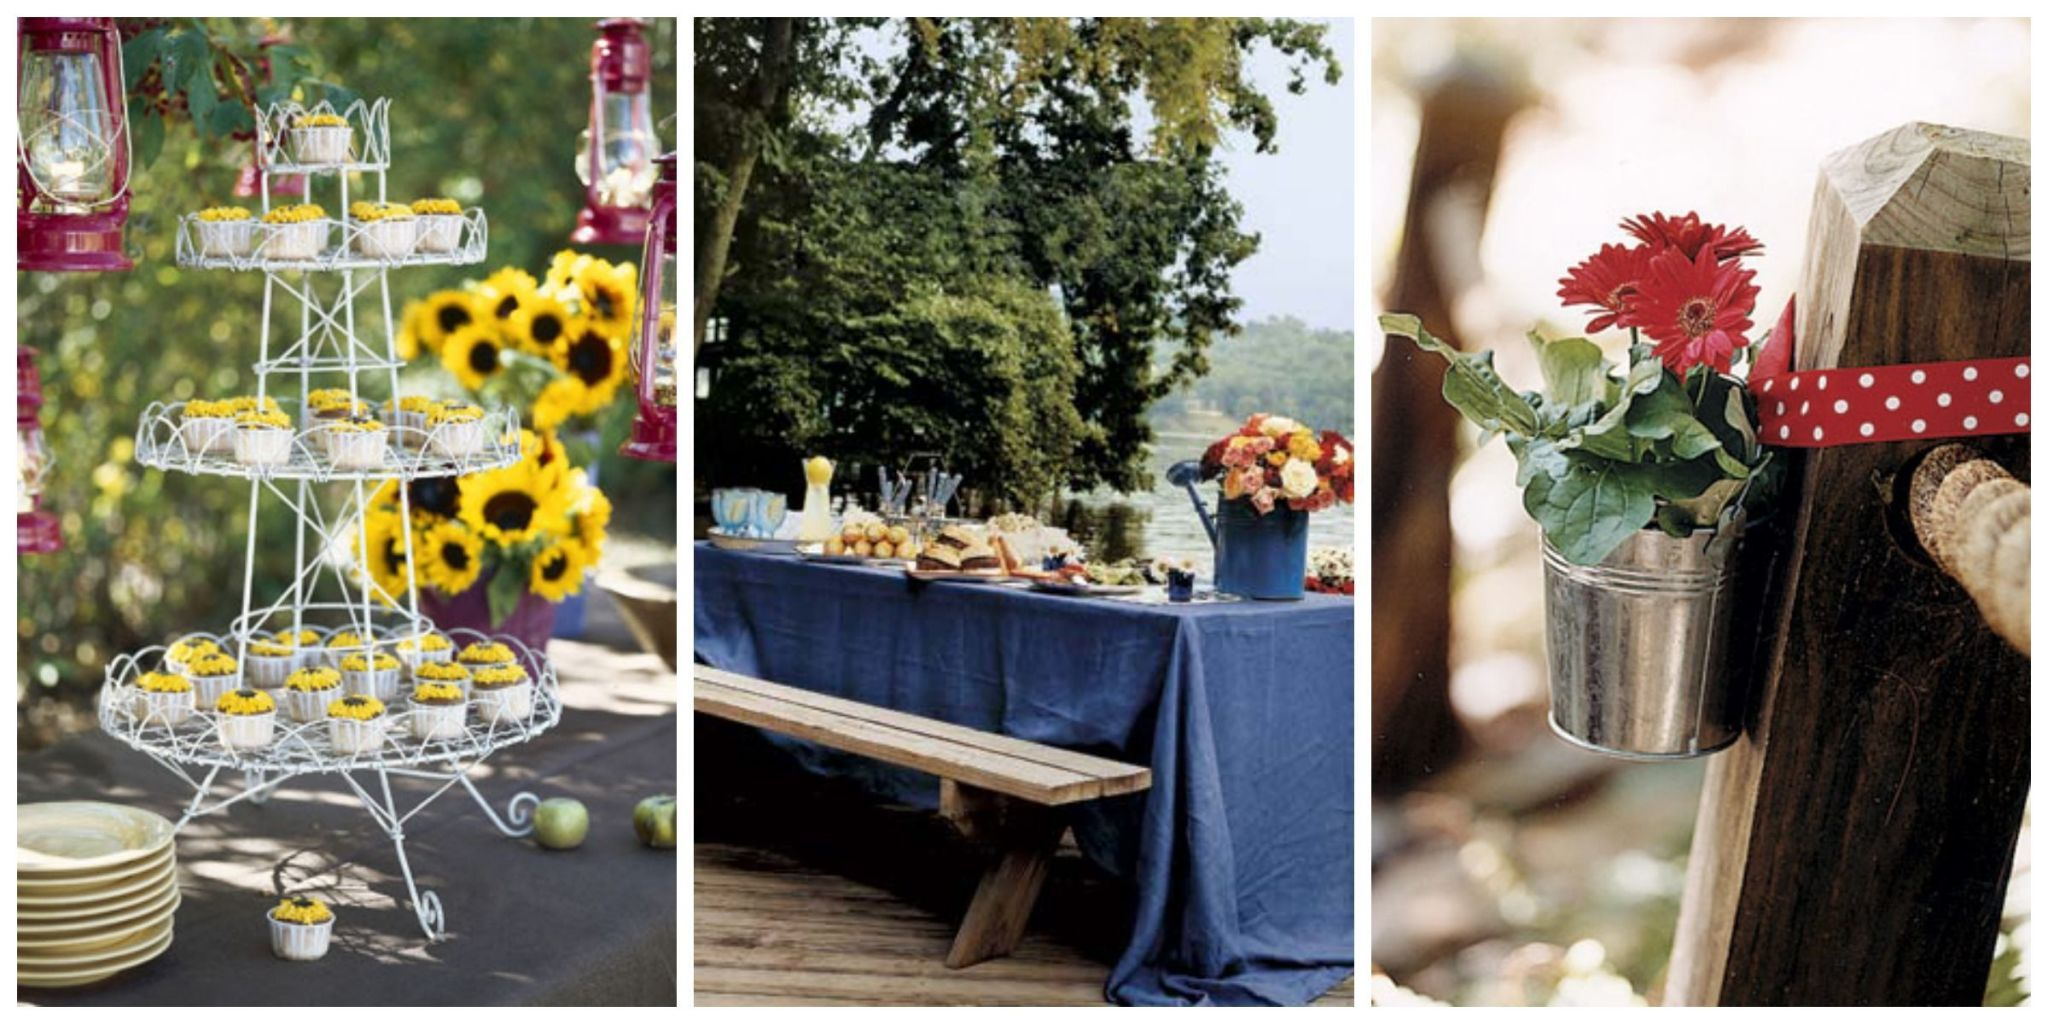 No Matter What The Theme, Get Ideas For Table Settings, Flowers, And Other  Decorations For Your Next Outdoor Party.